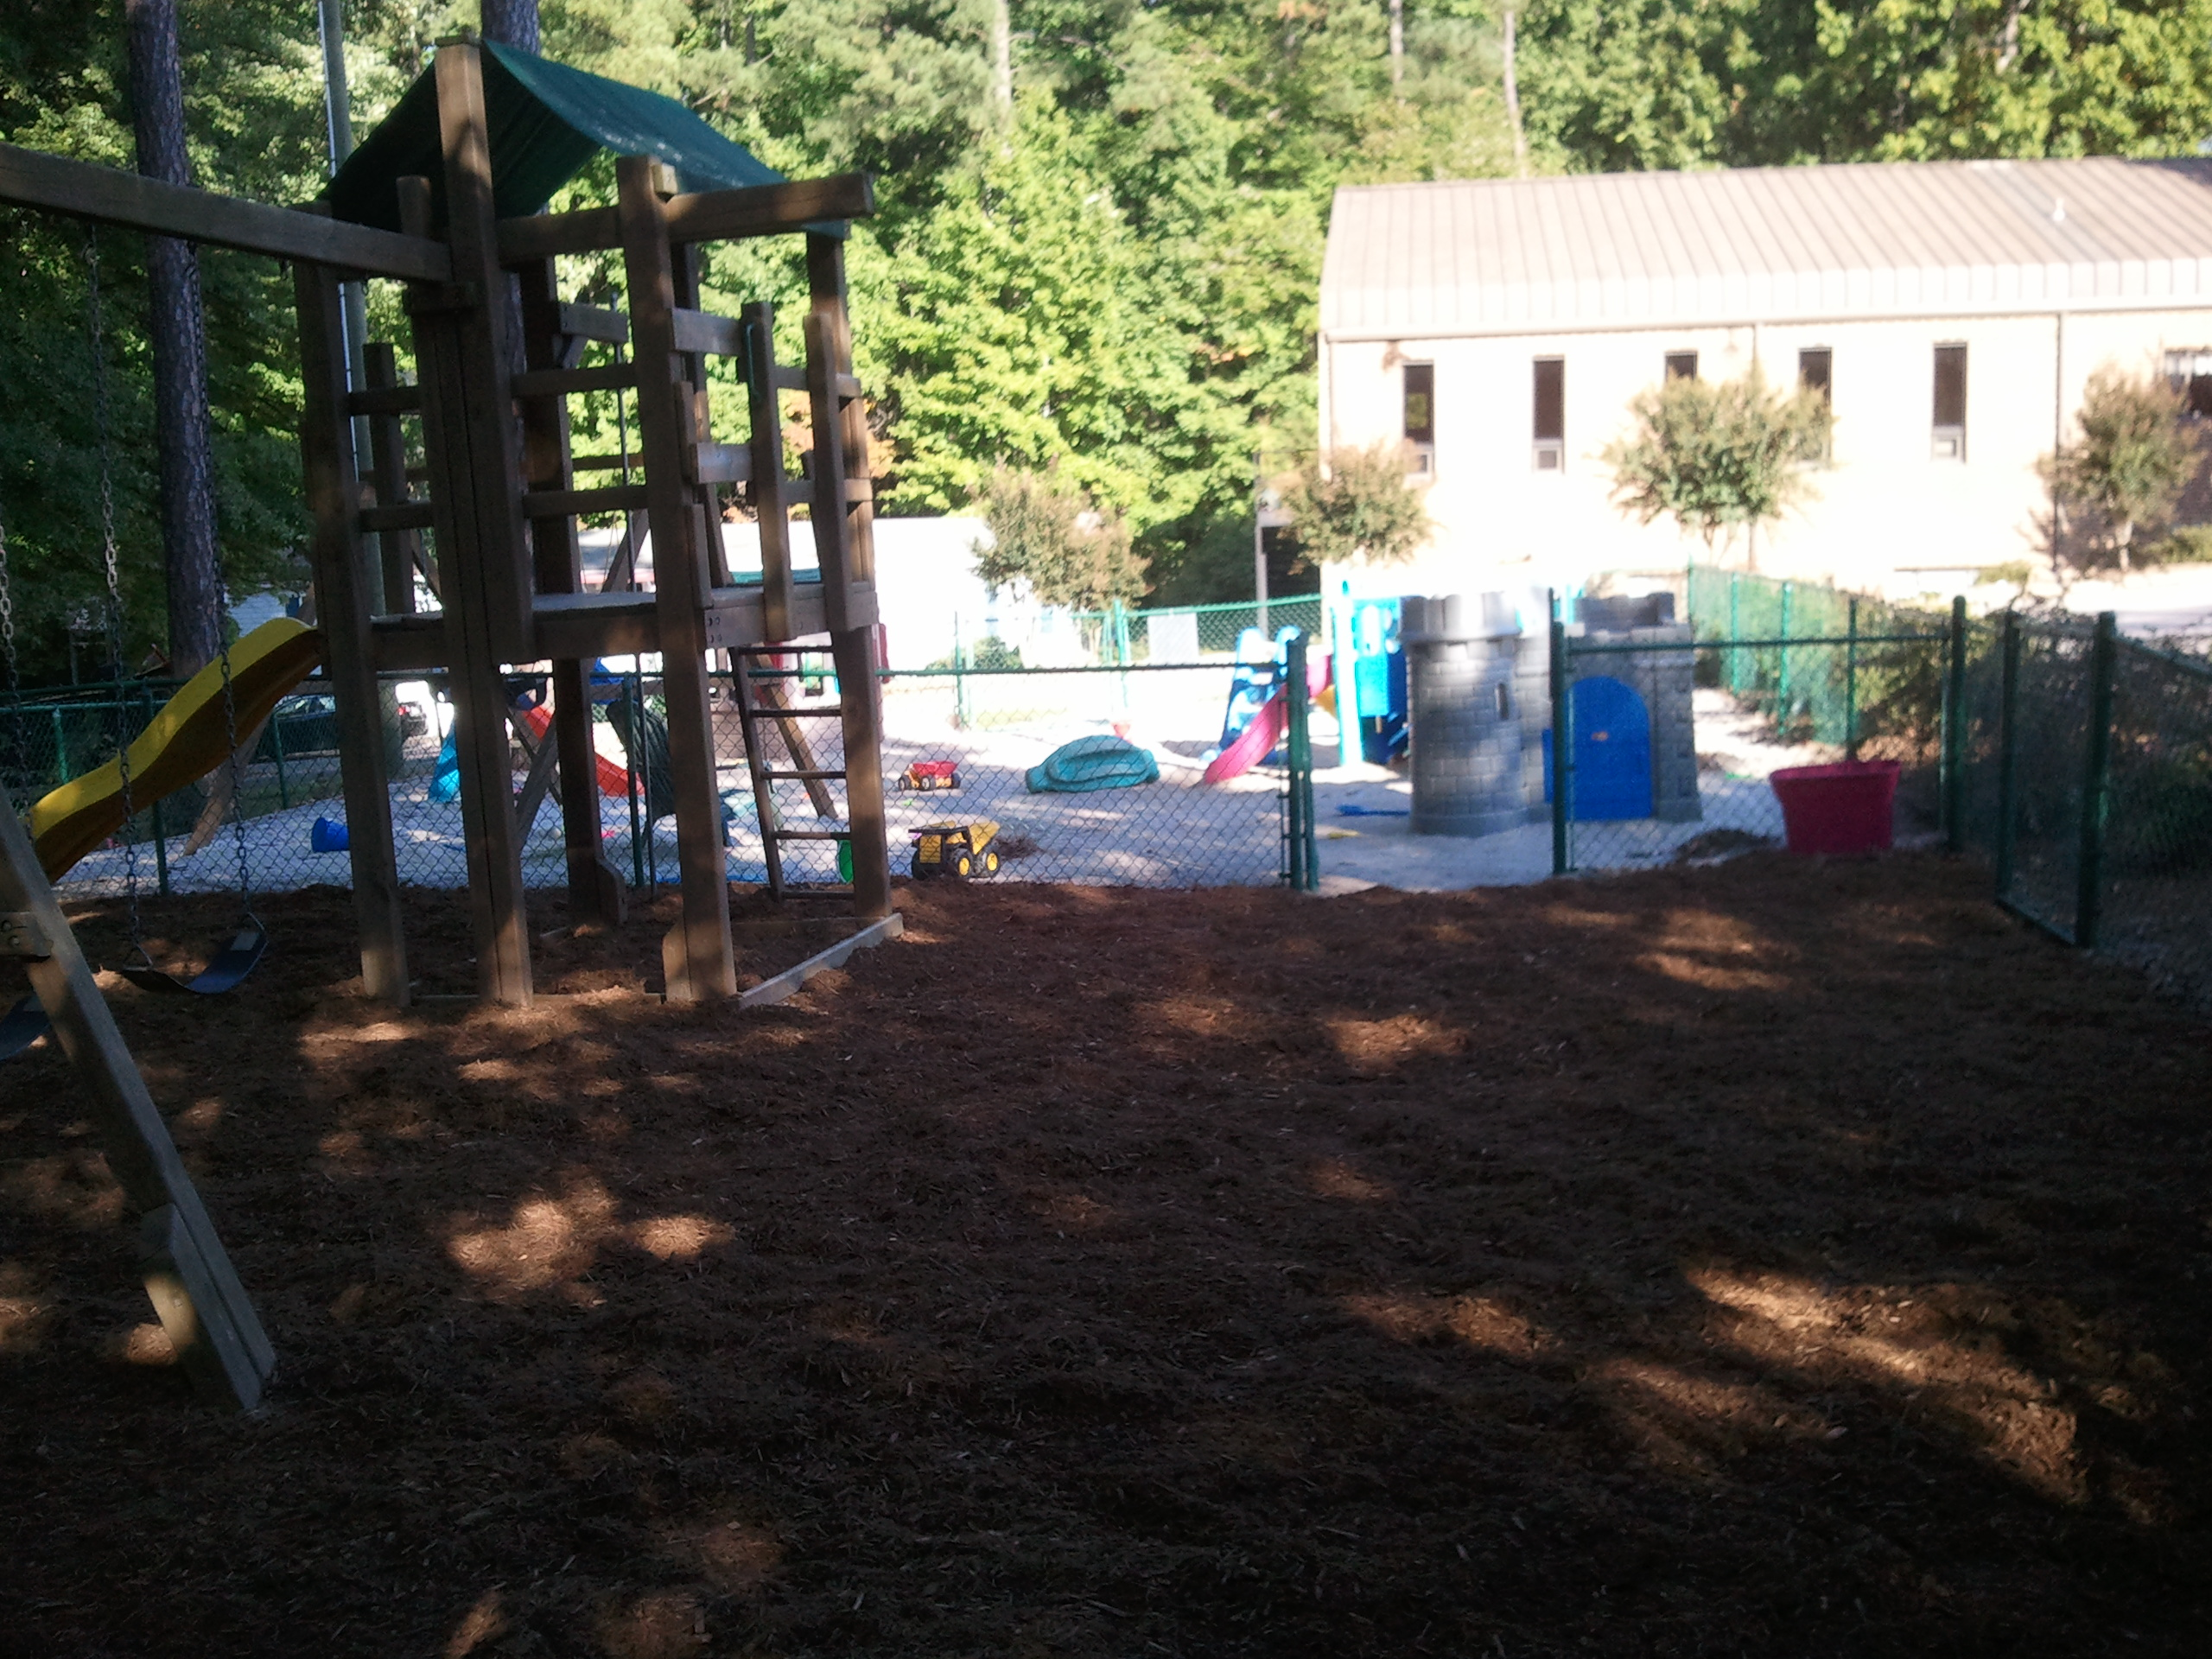 Playground - mulch side